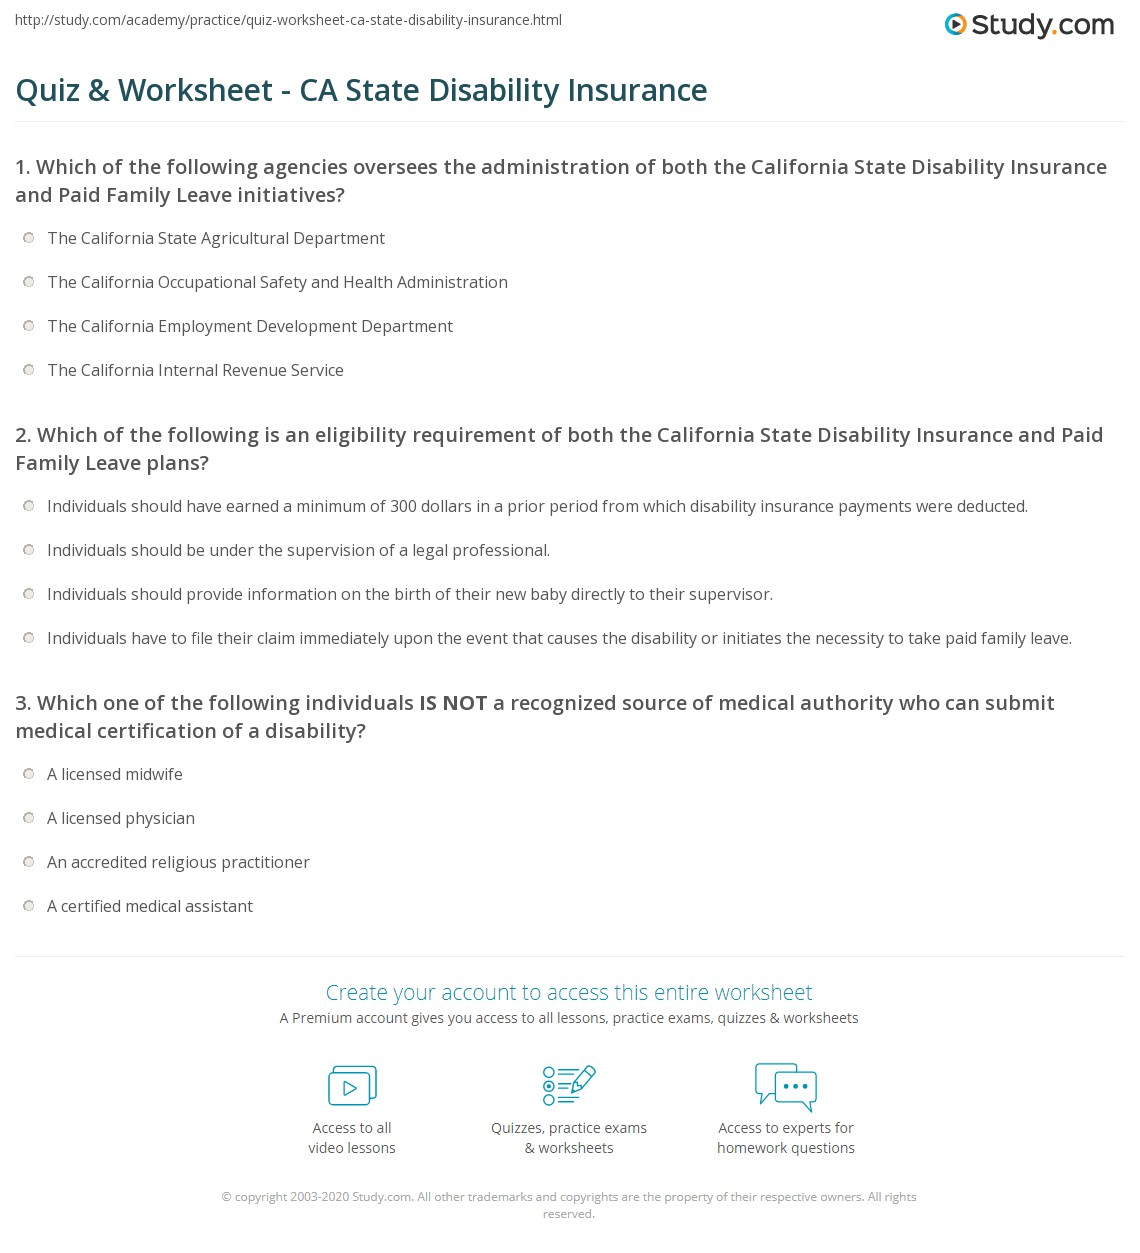 quiz worksheet ca state disability insurance. Black Bedroom Furniture Sets. Home Design Ideas